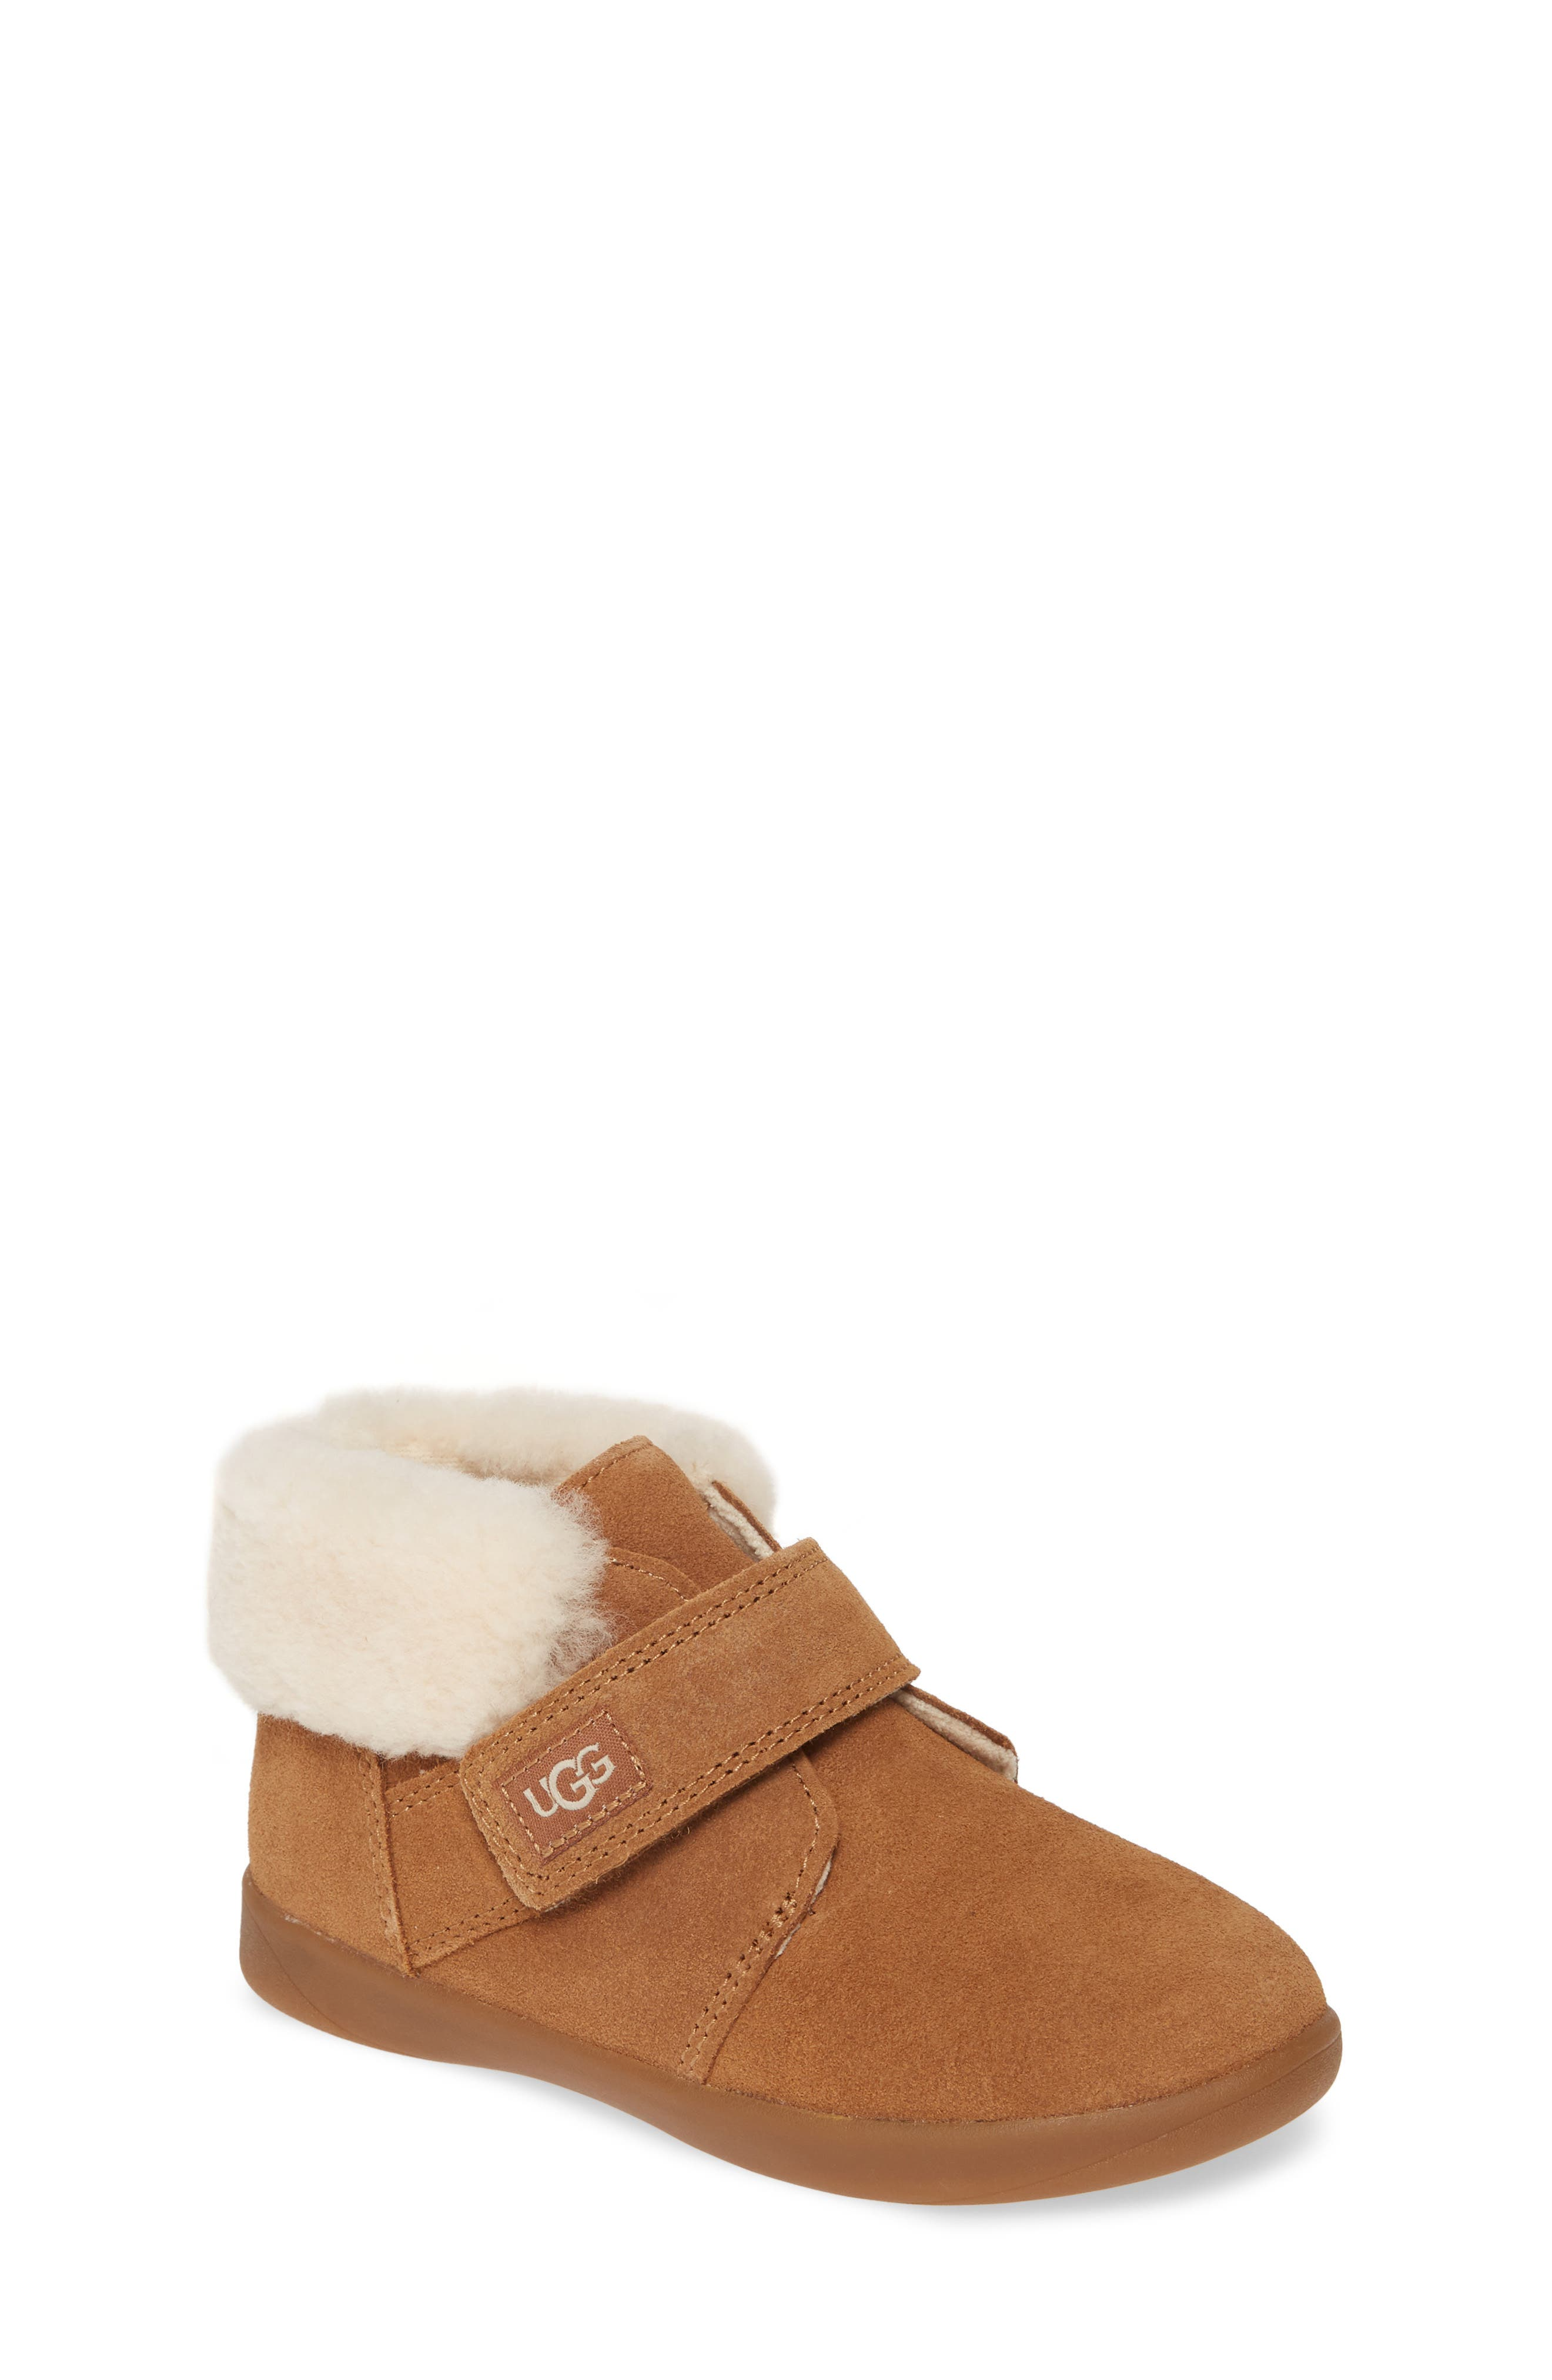 A cuff of plush genuine shearling underscores the cozy appeal of a favorite boot topped by an easy-on strap. The lining is made of UGGpure, a textile made entirely from wool to feel and wear like genuine shearling. Style Name: UGG Nolen Genuine Shearling Boot (Walker & Toddler). Style Number: 5884329. Available in stores.